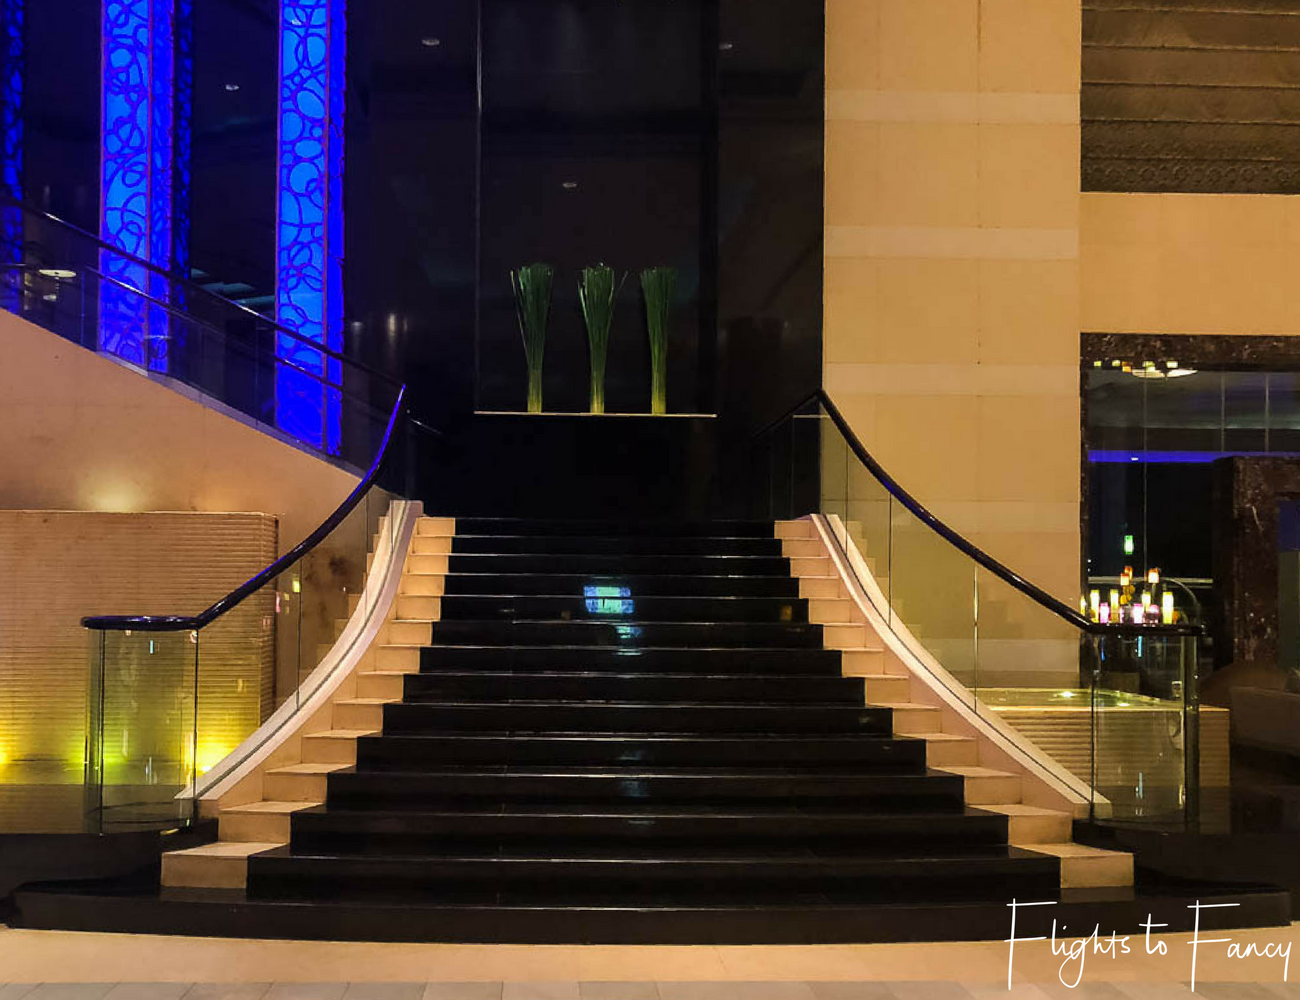 Flights To Fancy @ Radisson Blu Cebu City. Grand staircase